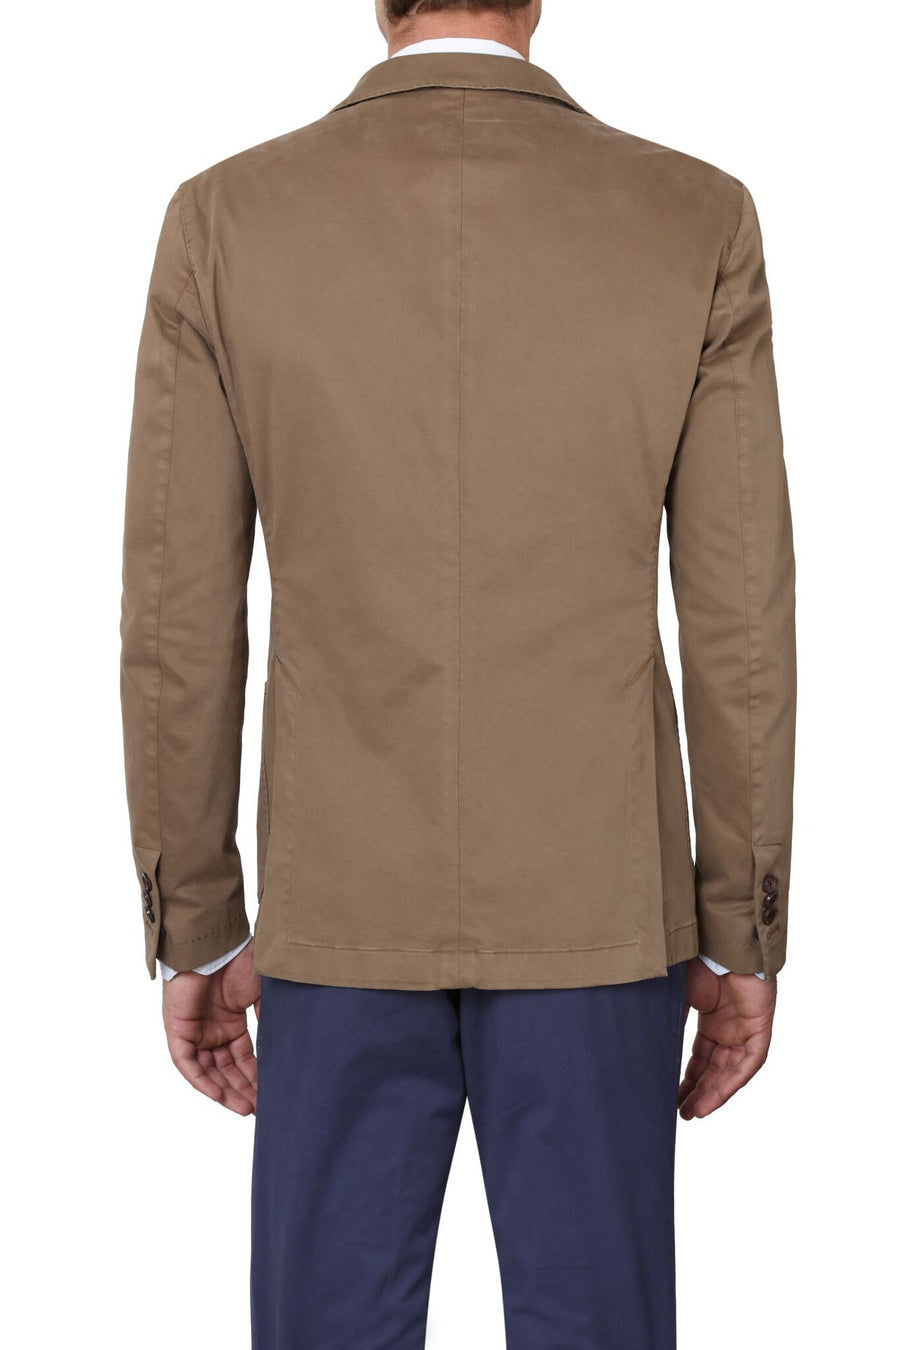 Jerry Key Cotton Sport Jacket in Khaki